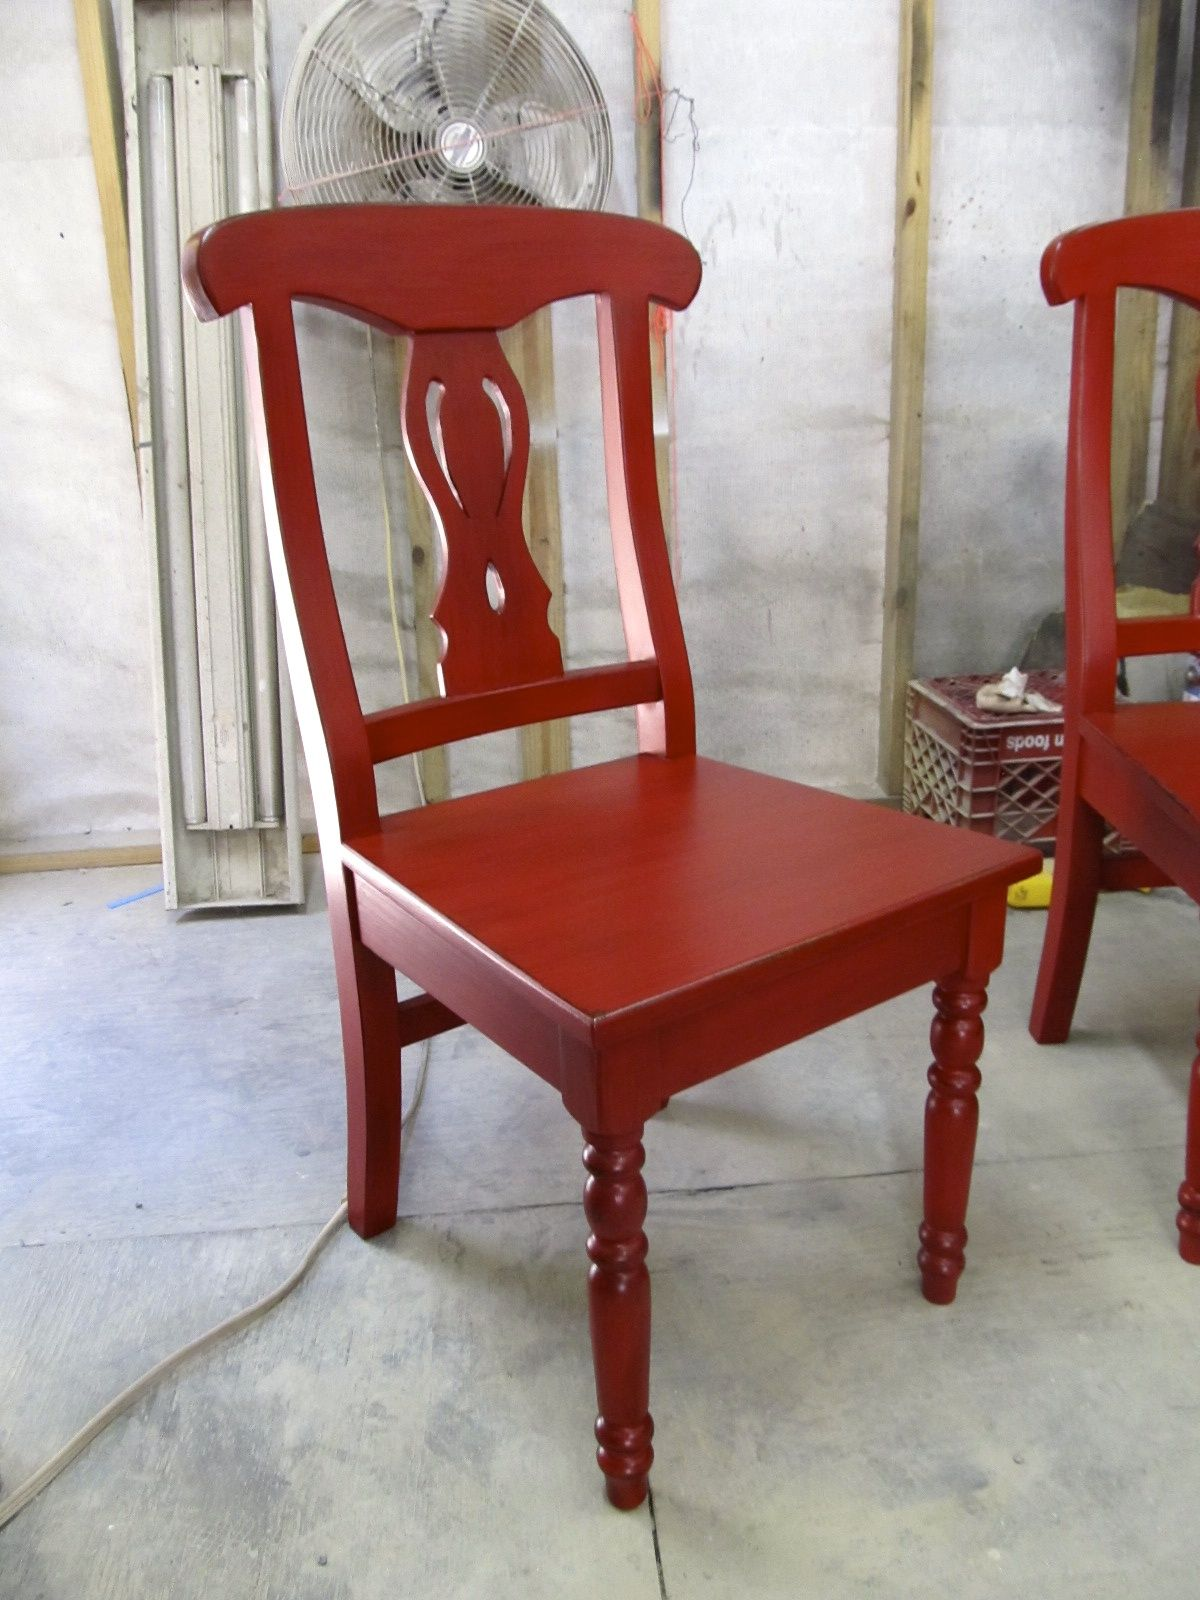 Handcrafted chairs in bright red color distressed finish contact us directly for custom orders 713 880 2105 barrio antiguo